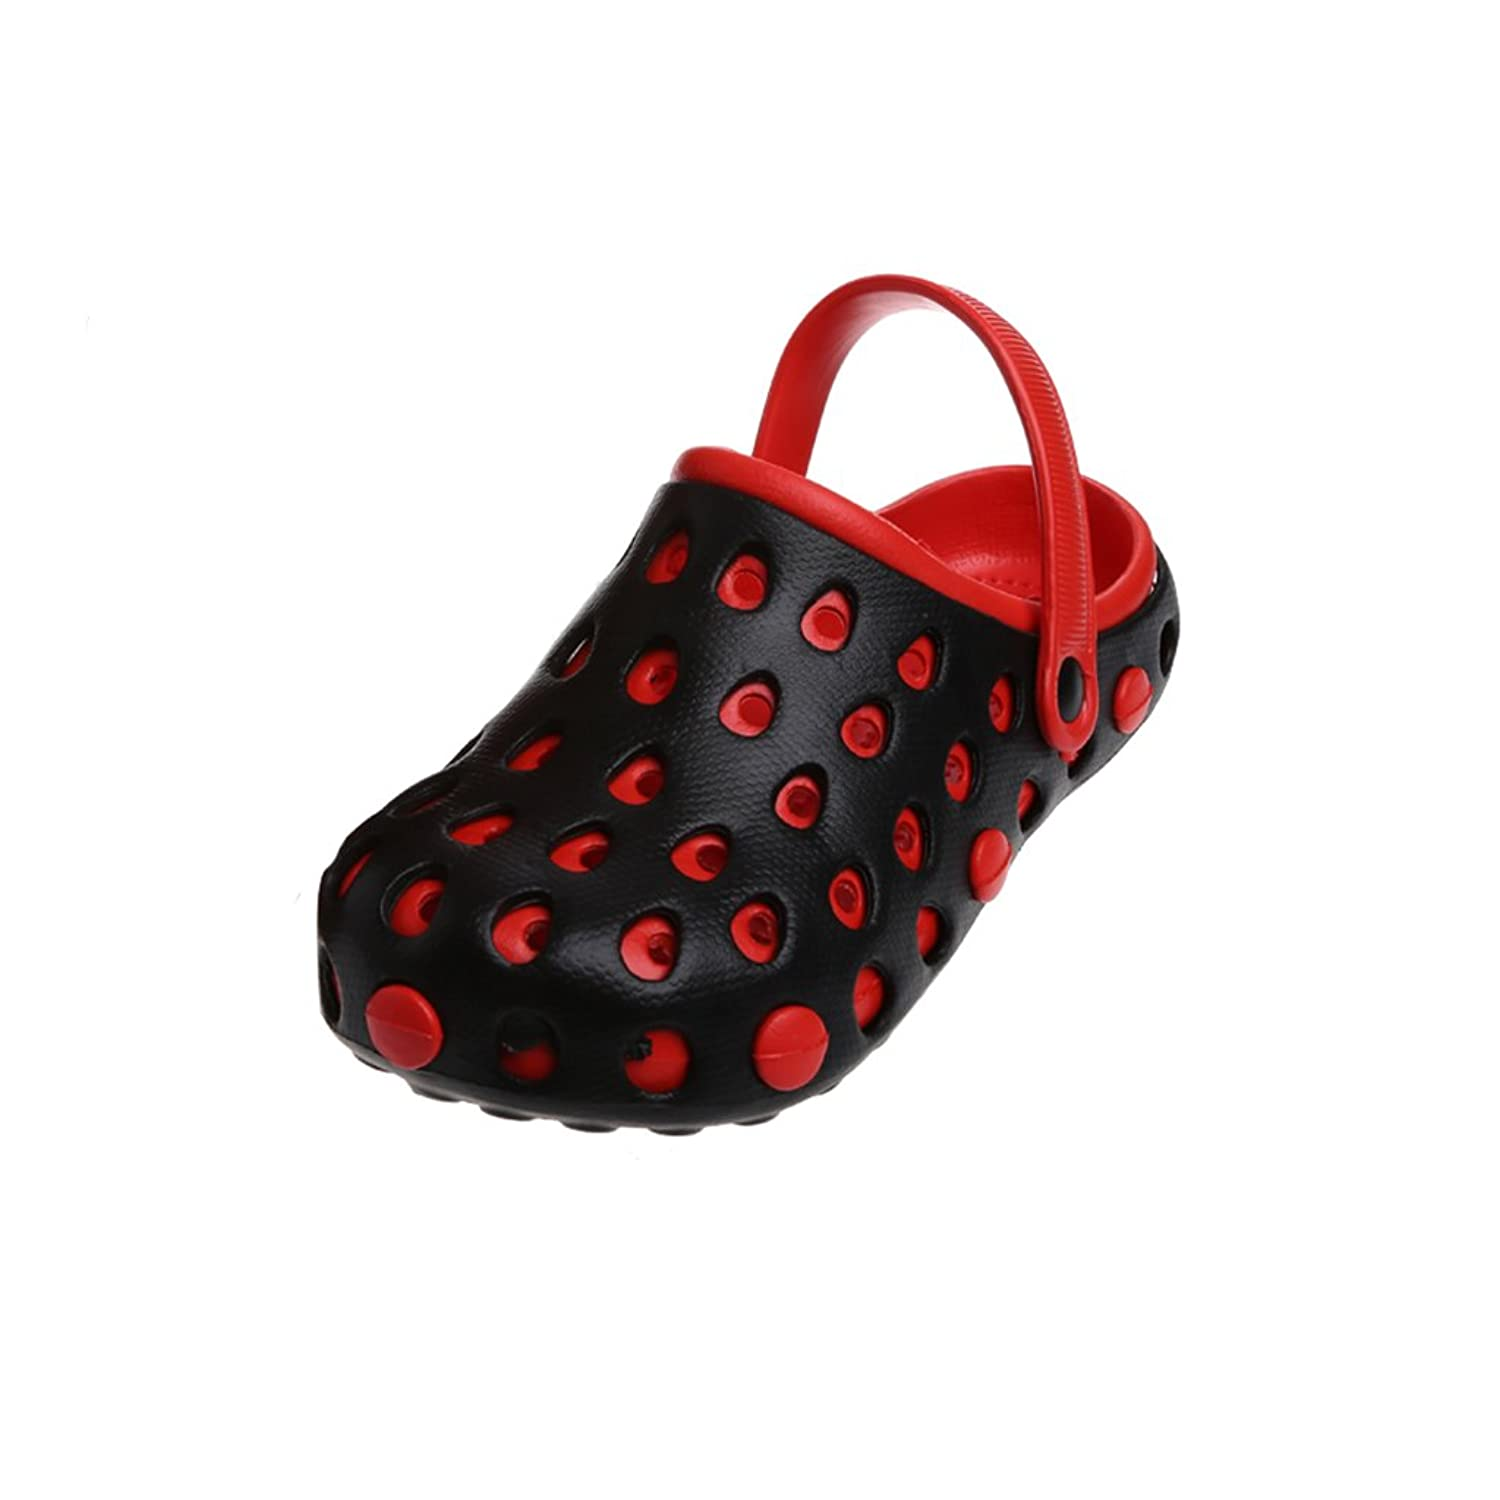 Mimgo Summer Men Sandals Shoes Hollow Out Sandals Hole Breathable - Black&Red